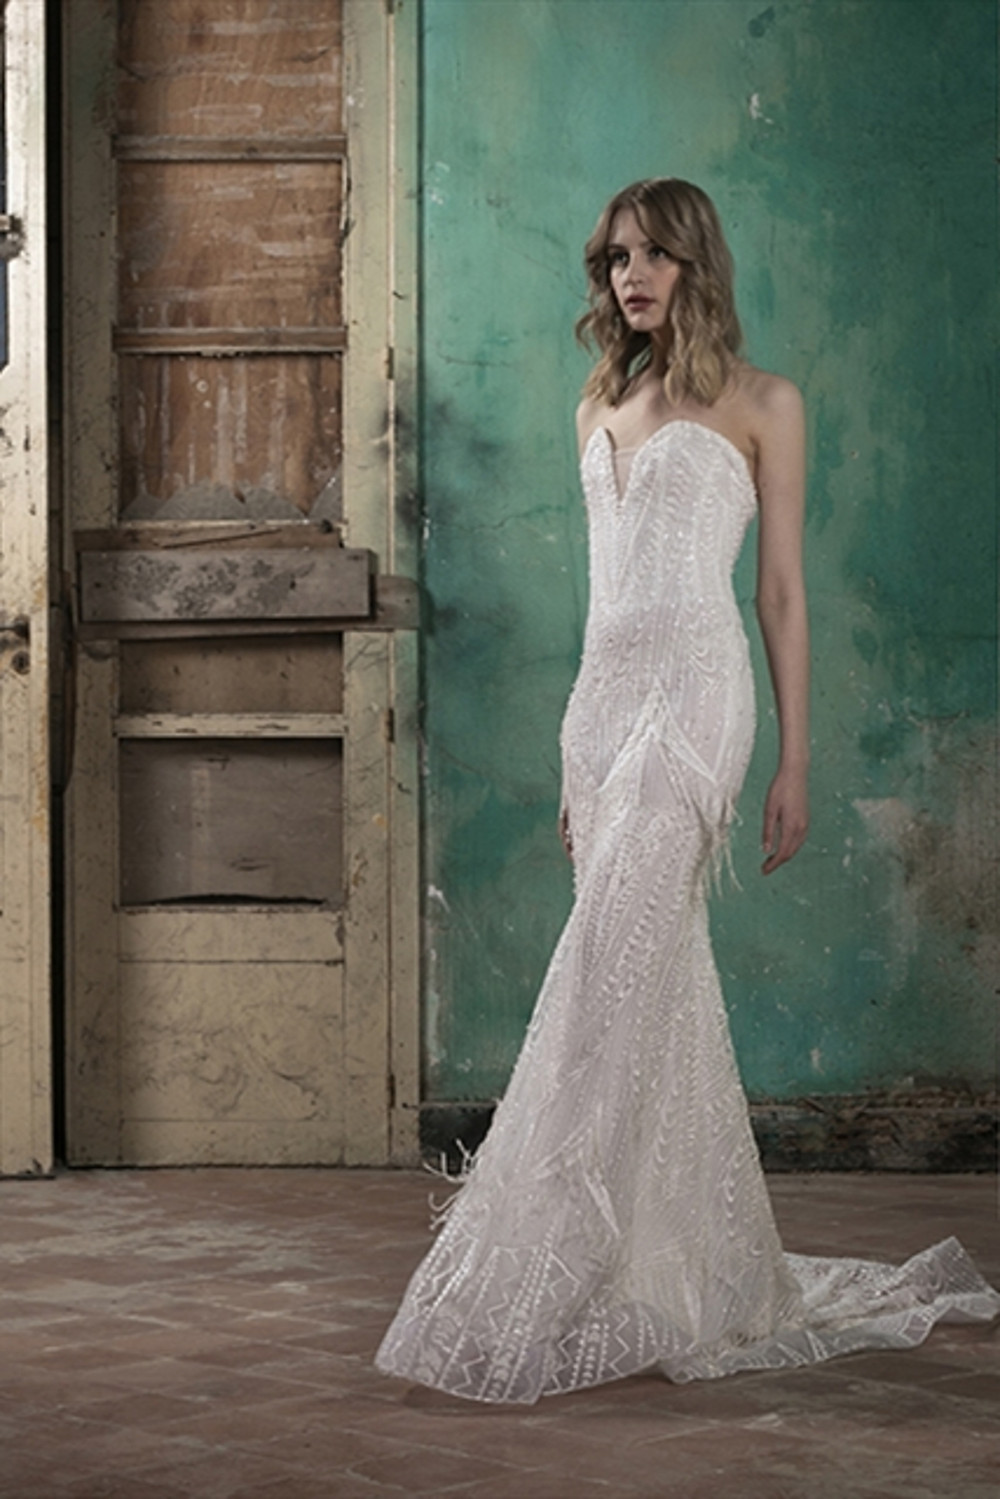 A strapless fitted mermaid  wedding dress featuring a heart-shaped neckline enriched with beaded embroidery and fringe detailing